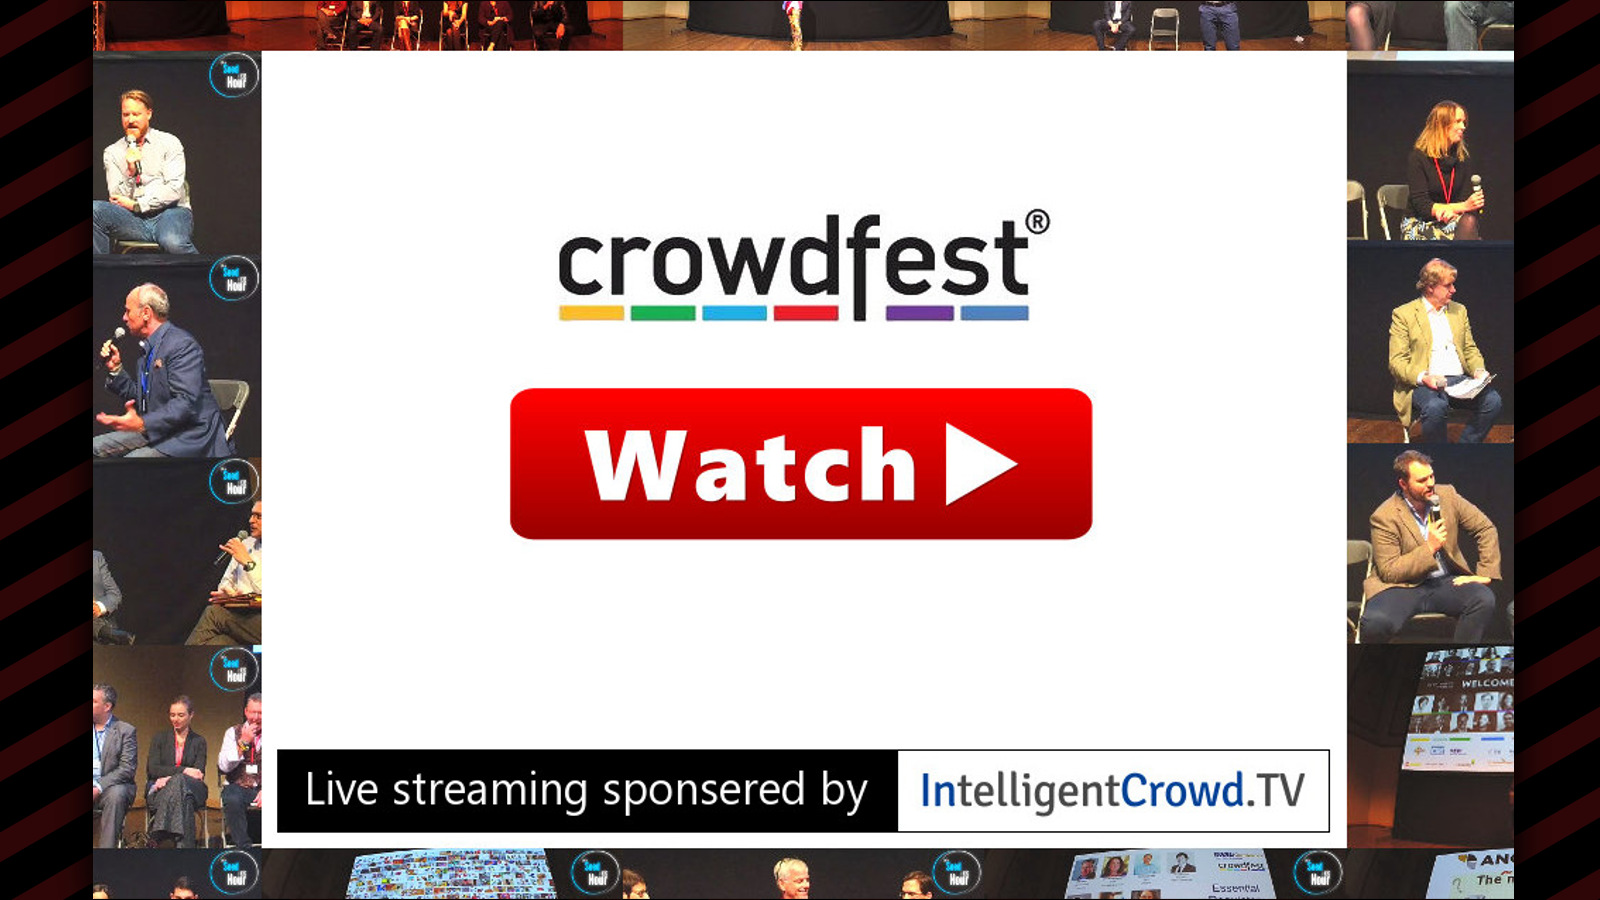 crowdfest_watch_cover2